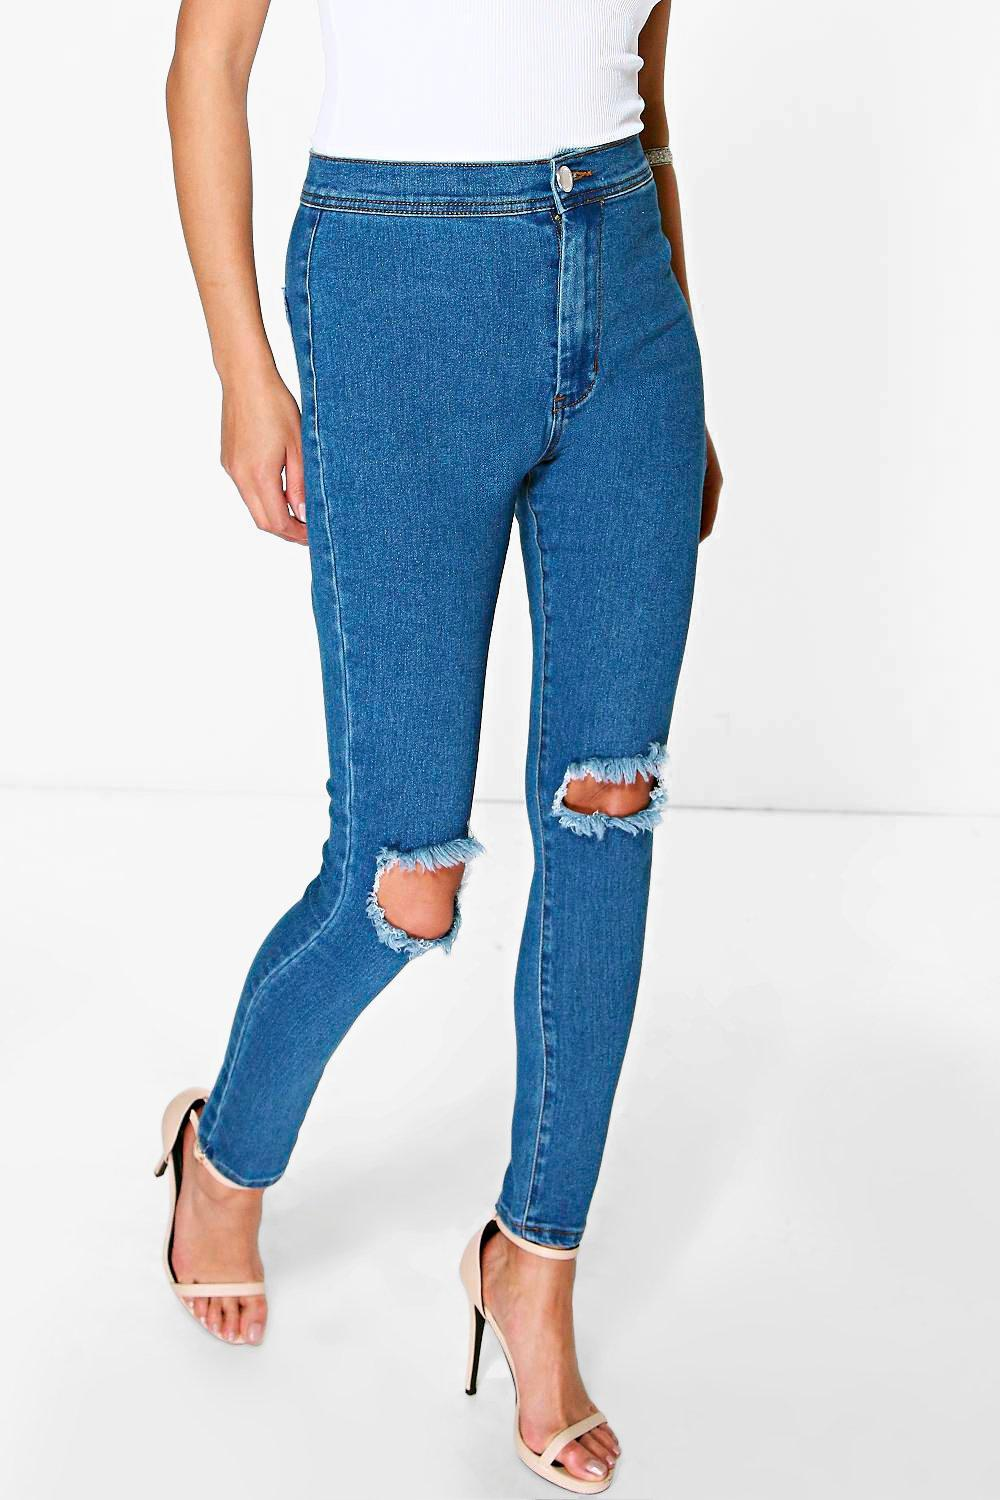 Lara High Rise Ink Blue Knee Slits Skinny Jeans